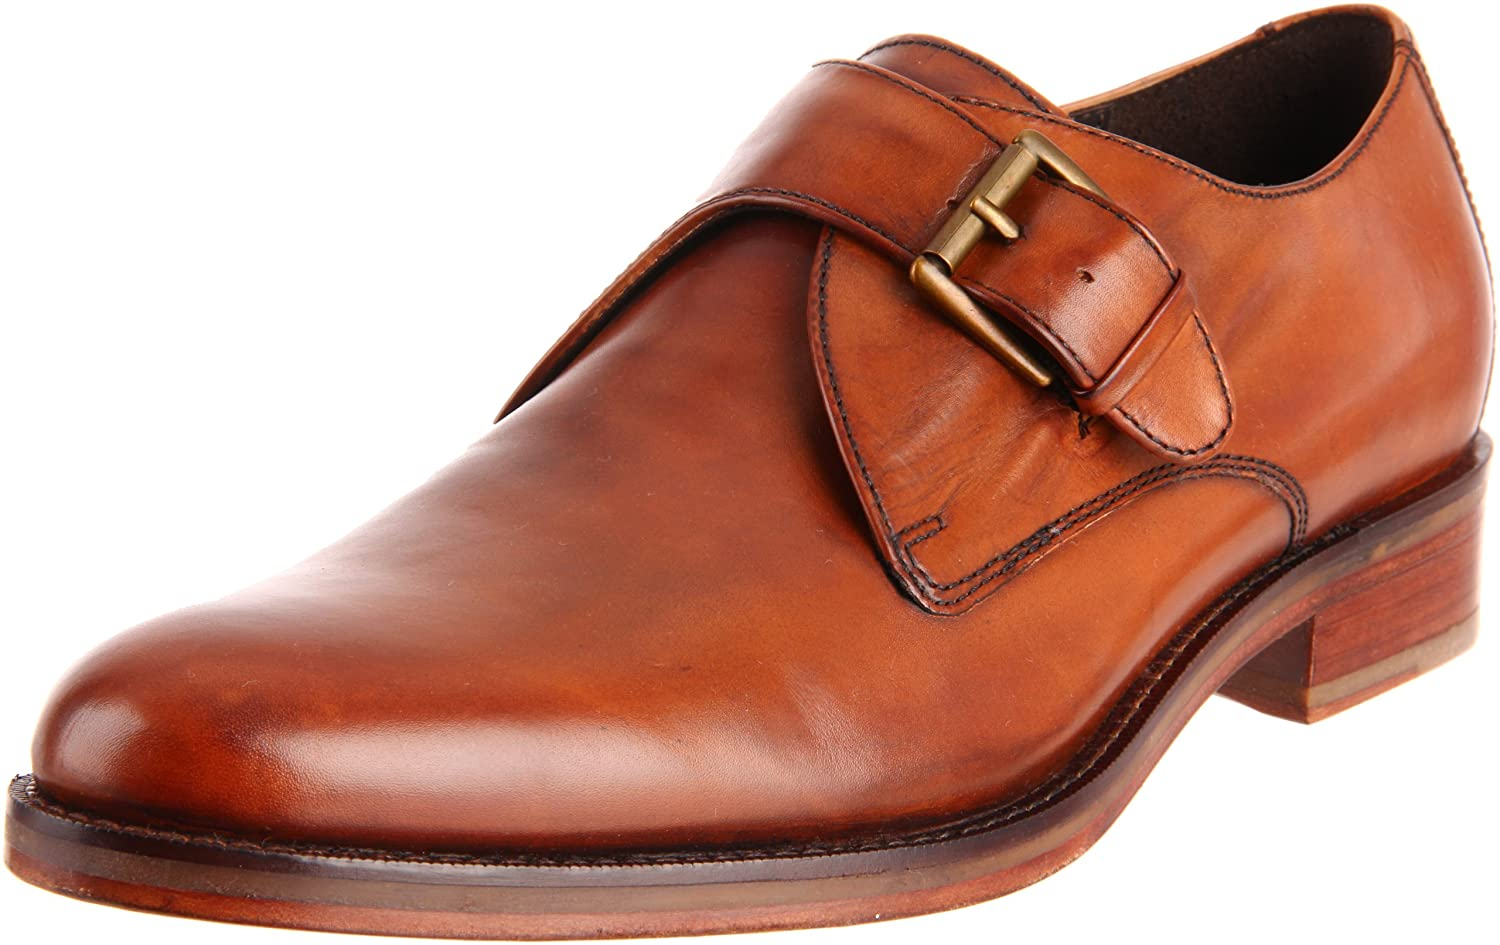 CoSTUME NATIONAL Single Monk Strap Oxford | DealTrend